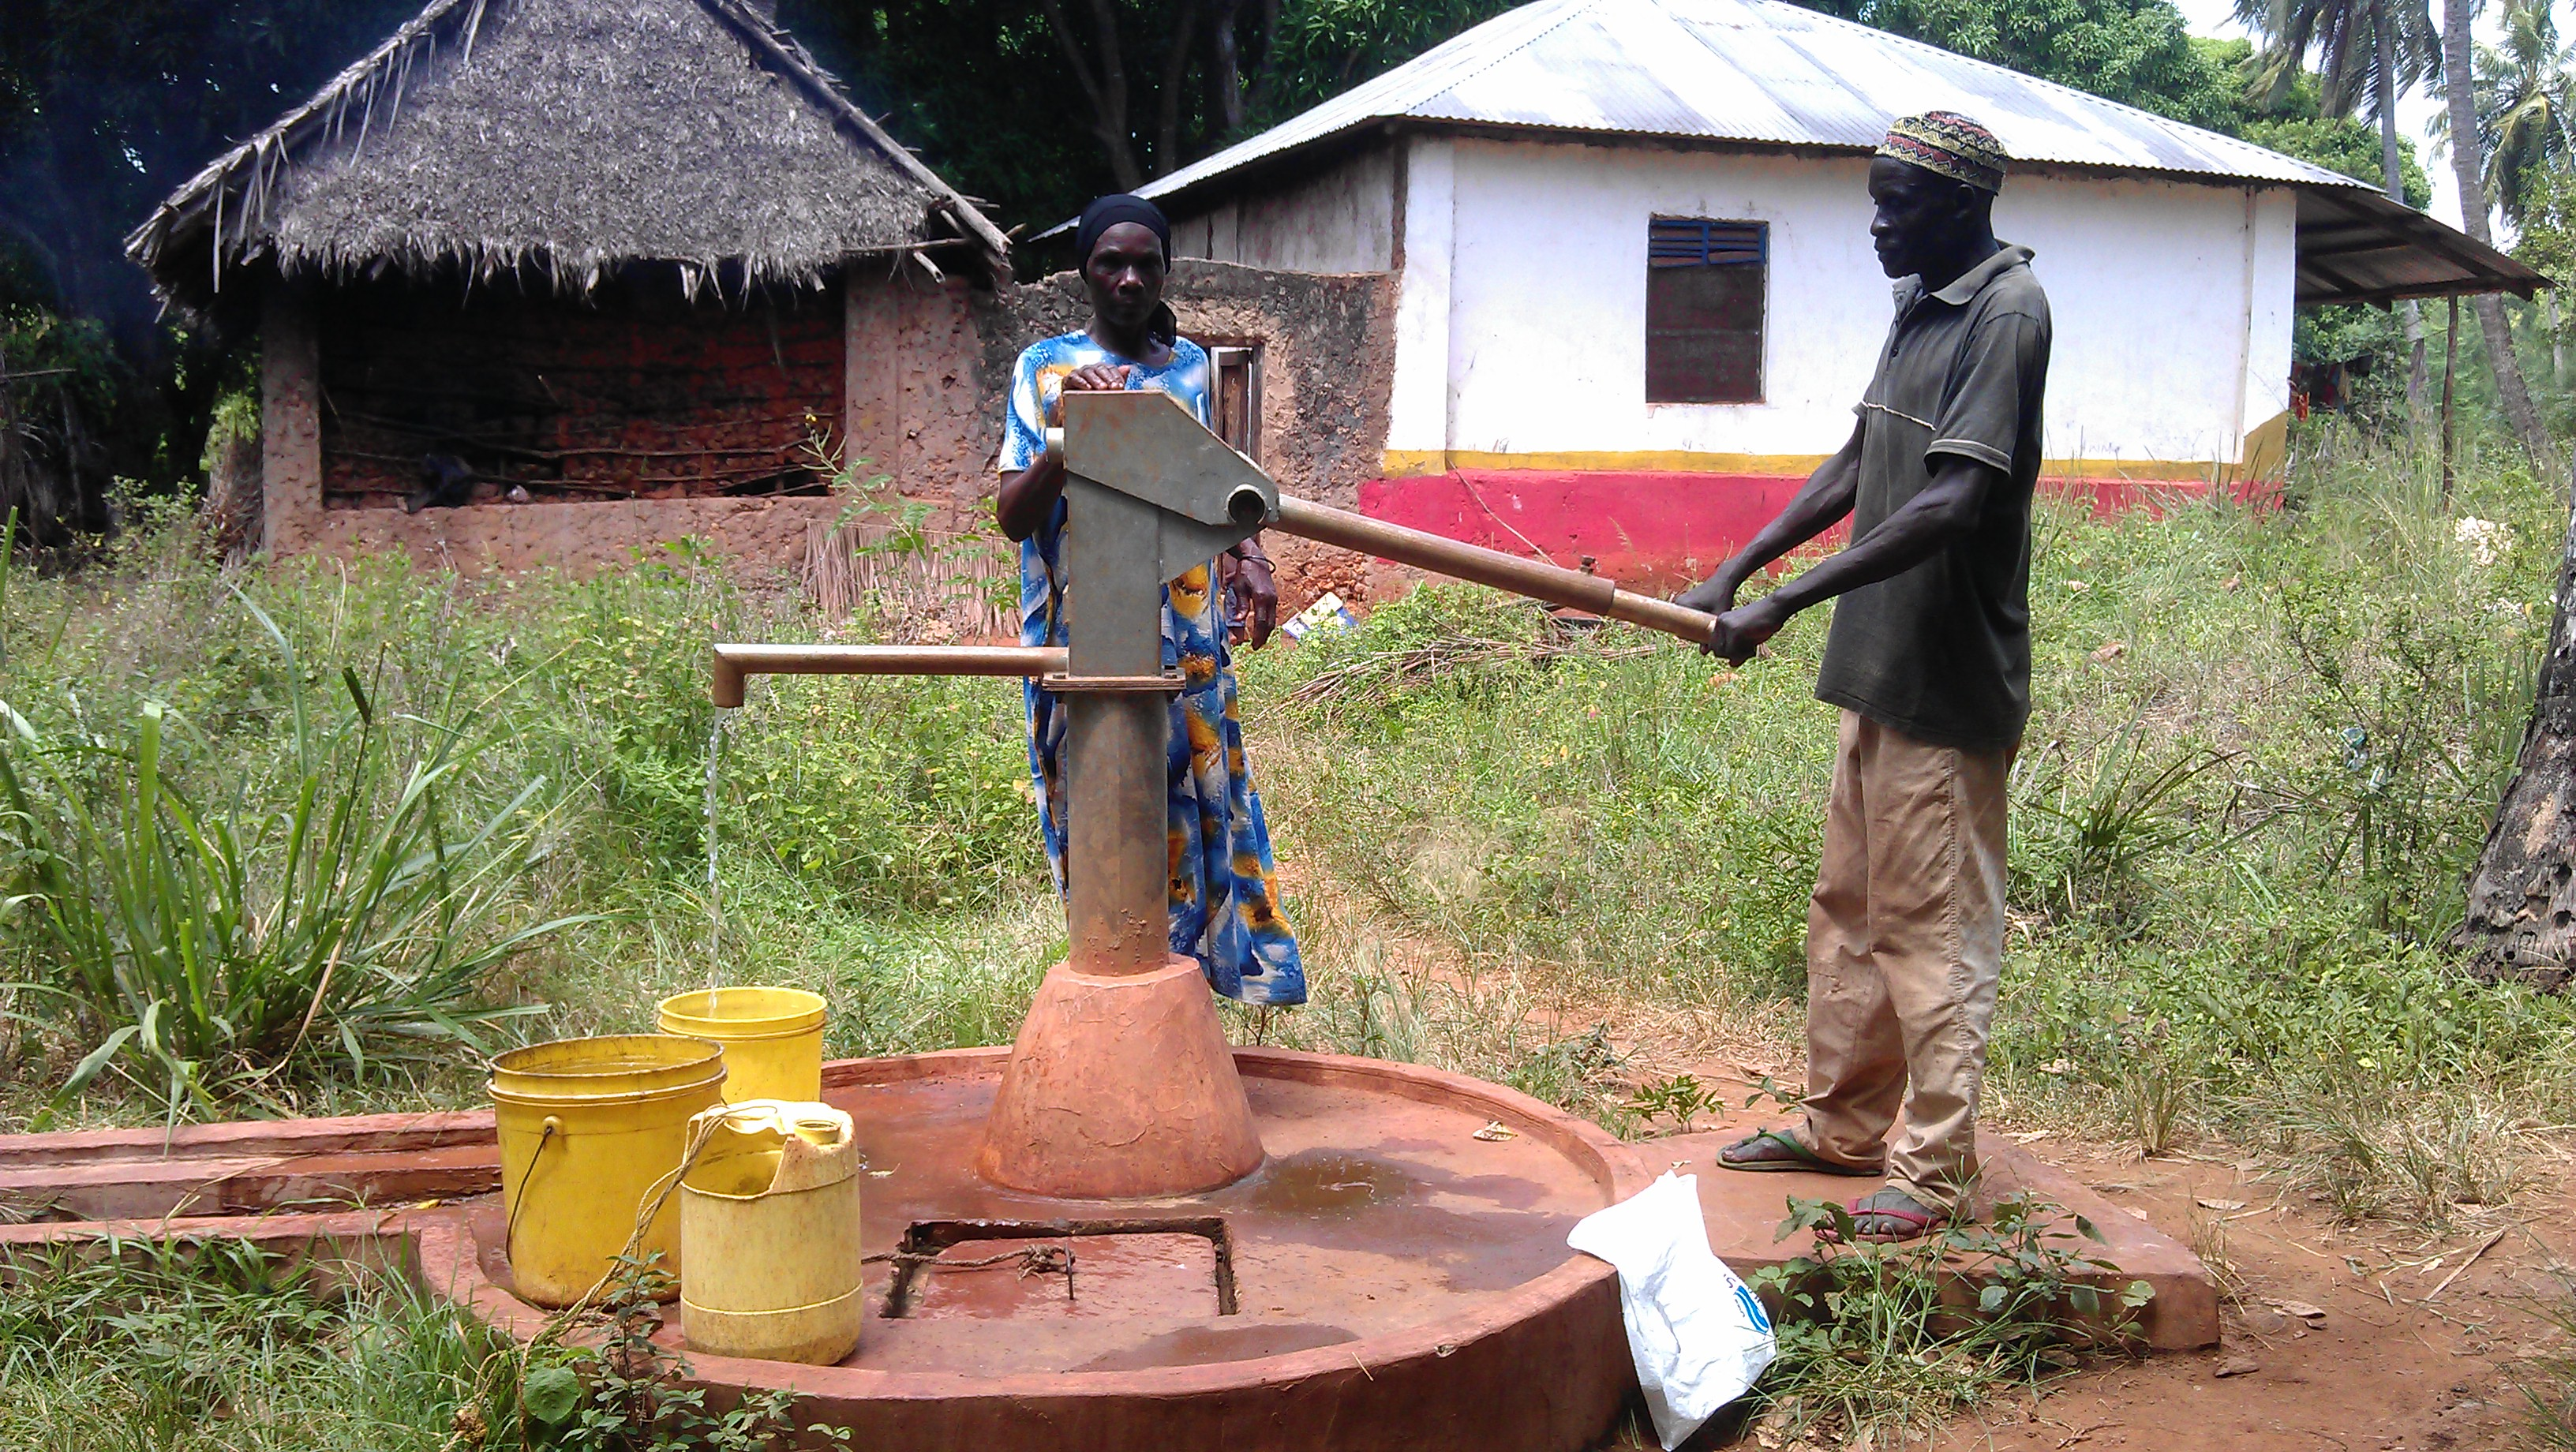 Another working hand pump